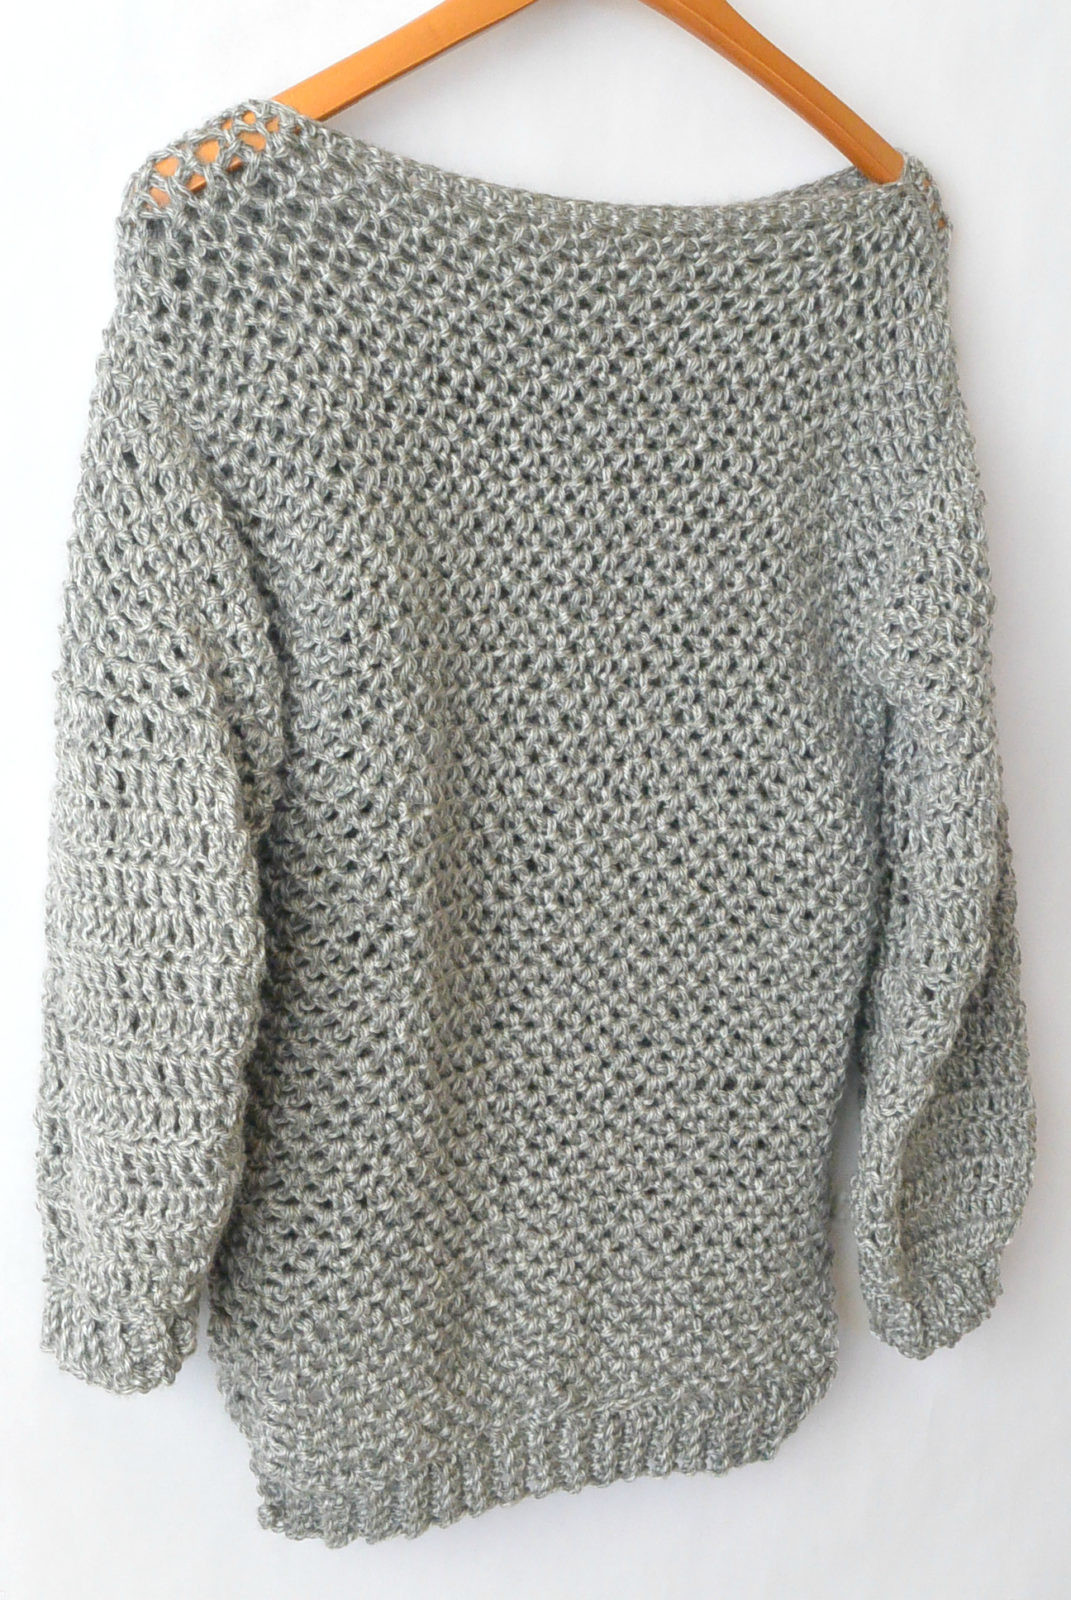 Crochet Sweater Pattern Free Luxury How to Make An Easy Crocheted Sweater Knit Like – Mama Of Unique 50 Images Crochet Sweater Pattern Free